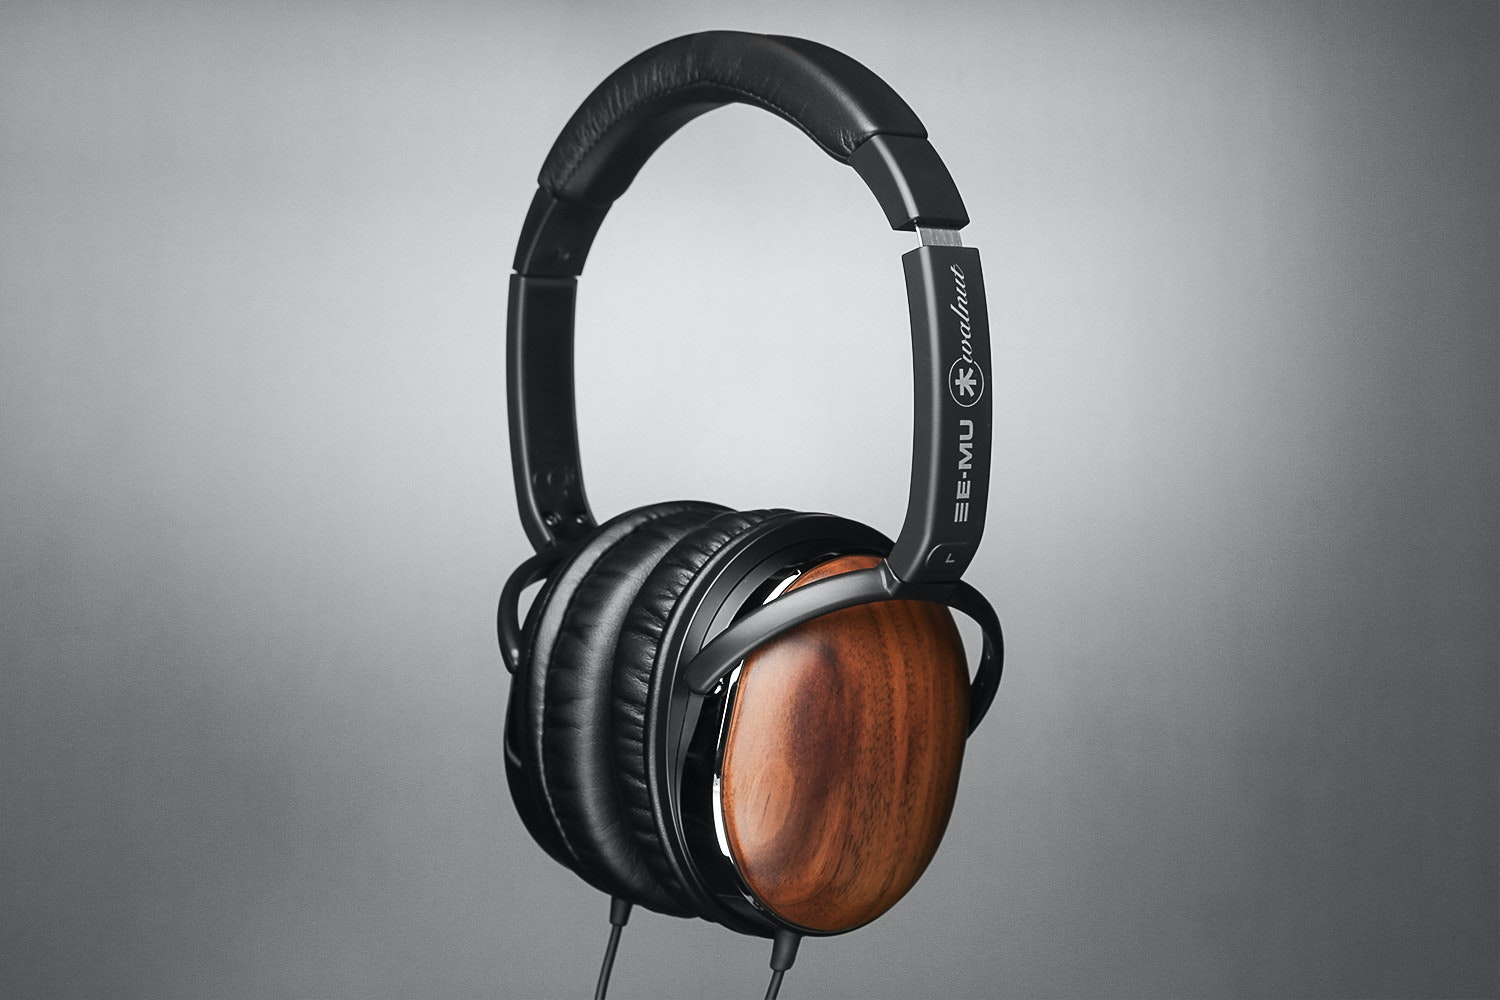 EMU Walnut Lightweight Headphones